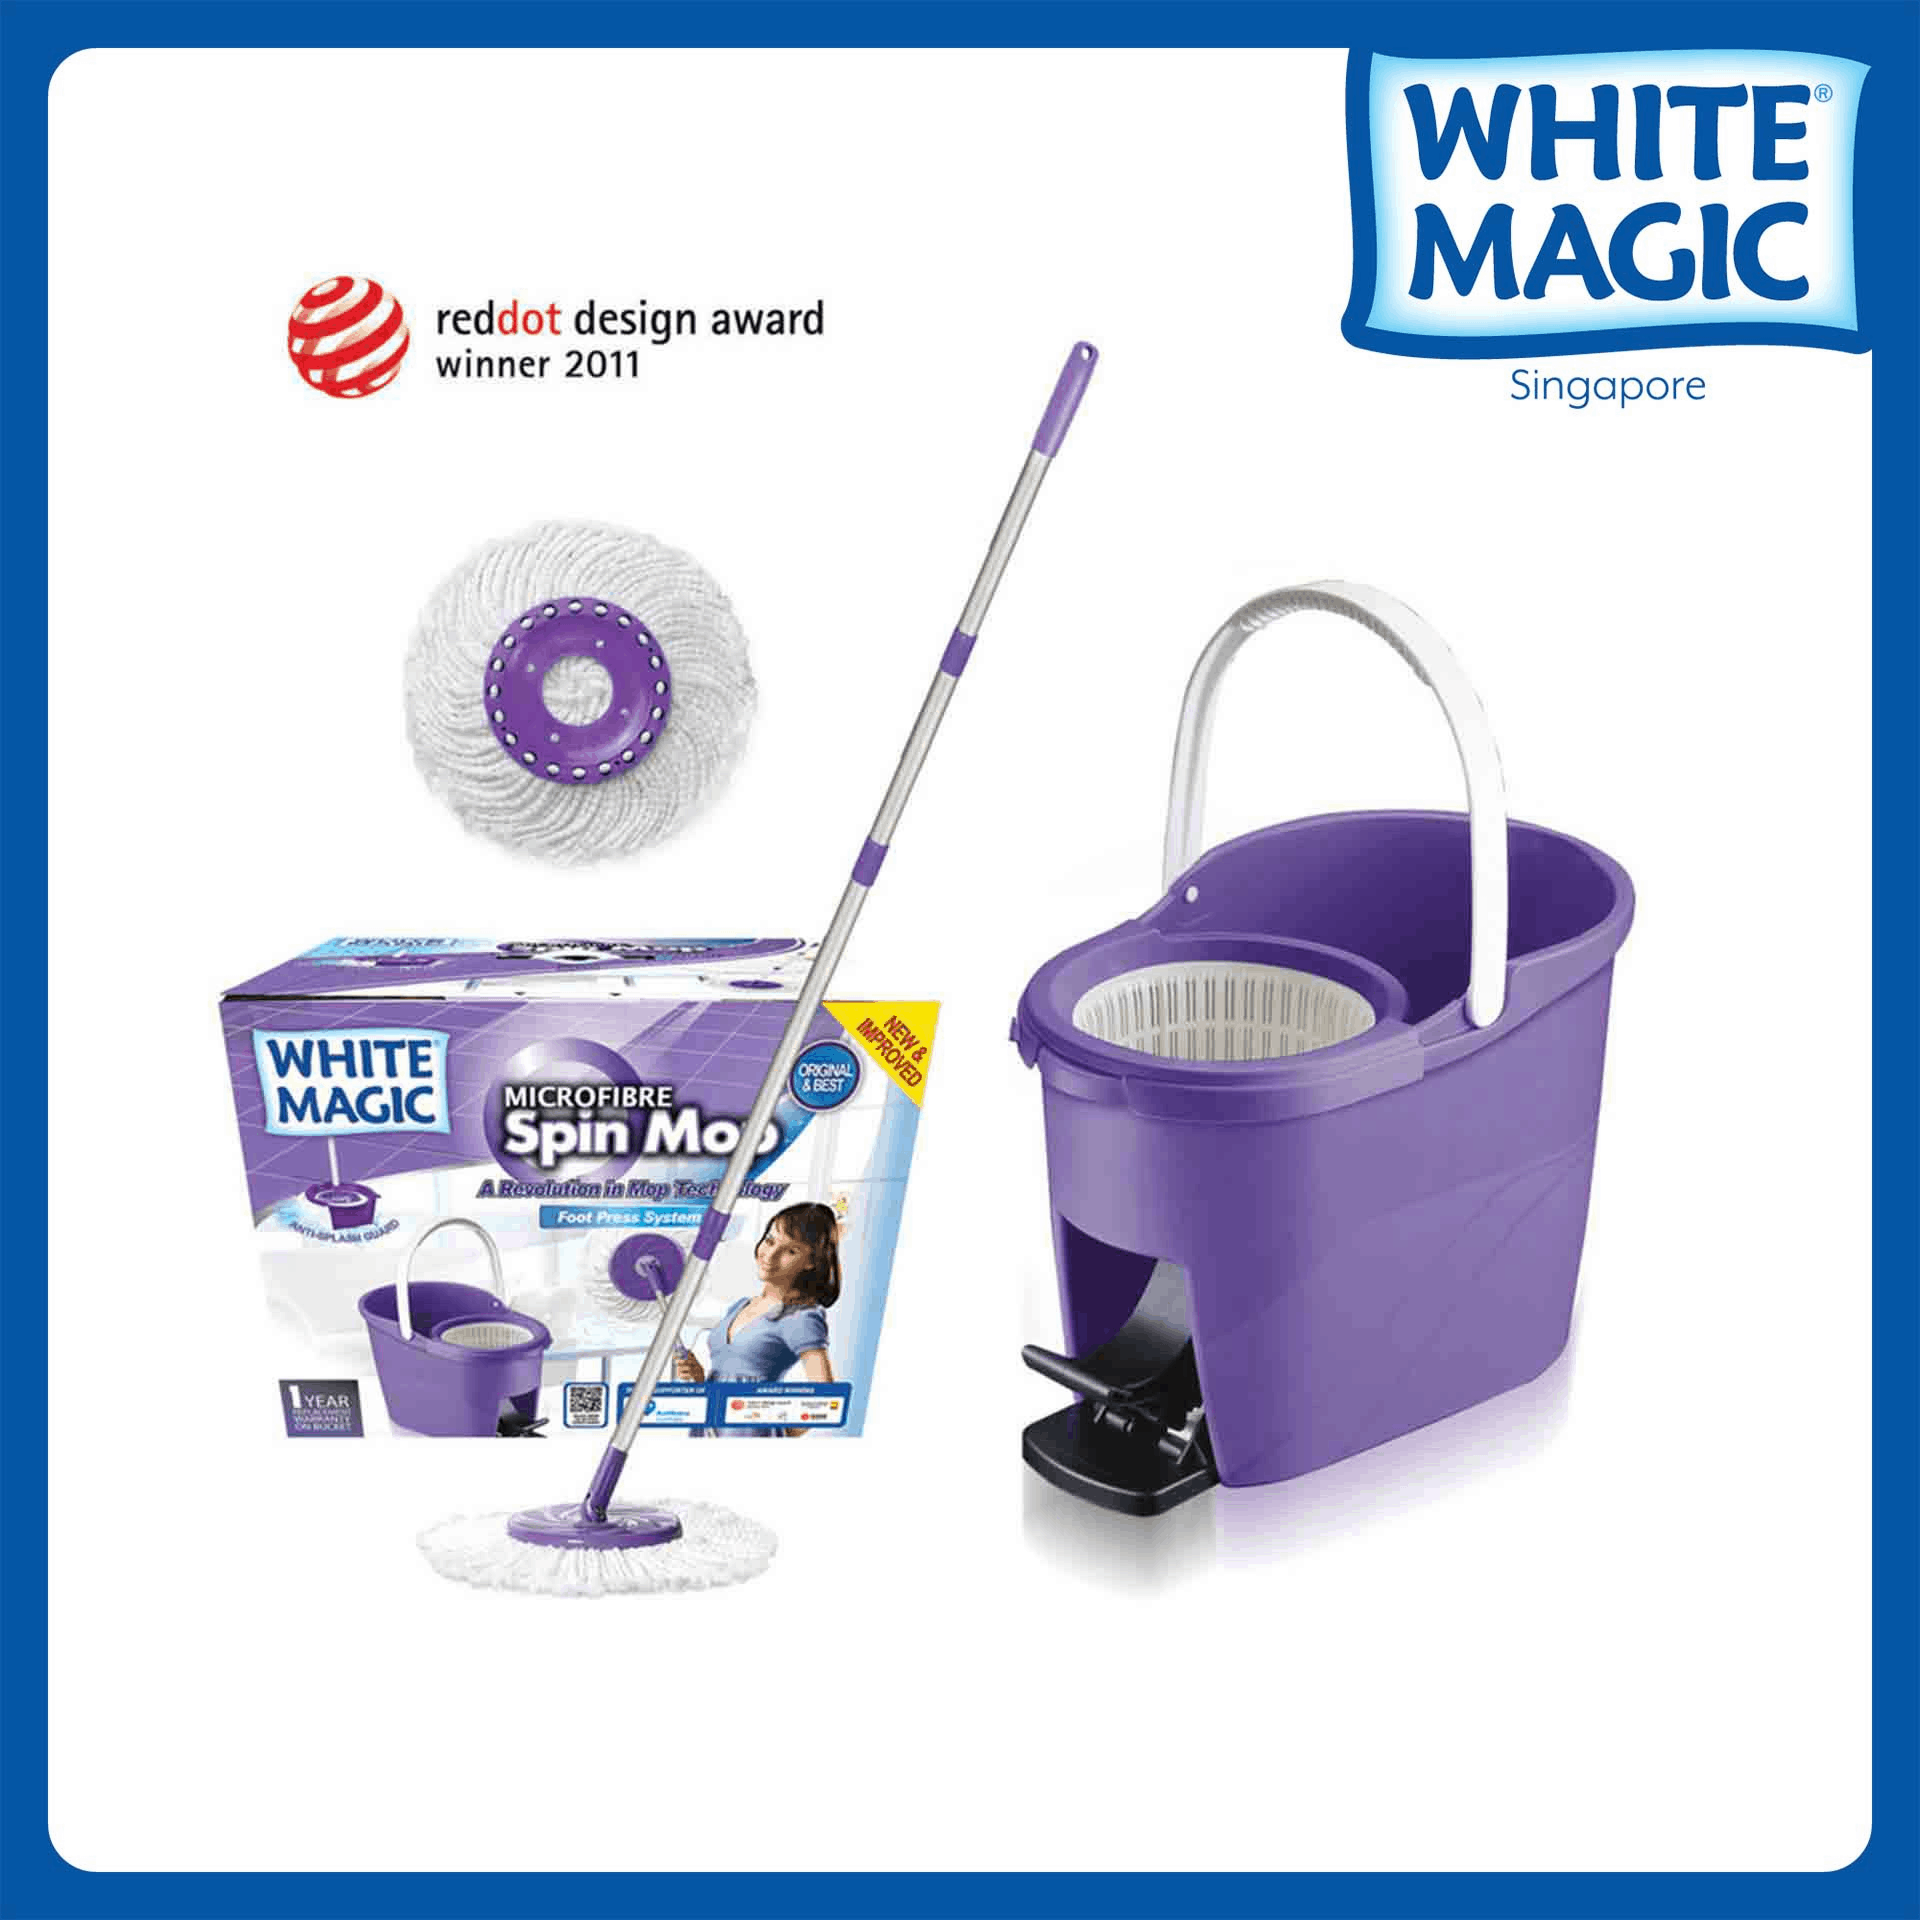 White Magic Foot Press Spin Mop Set made in Taiwan [Housewives Favorite] 1 Year Bucket Warranty